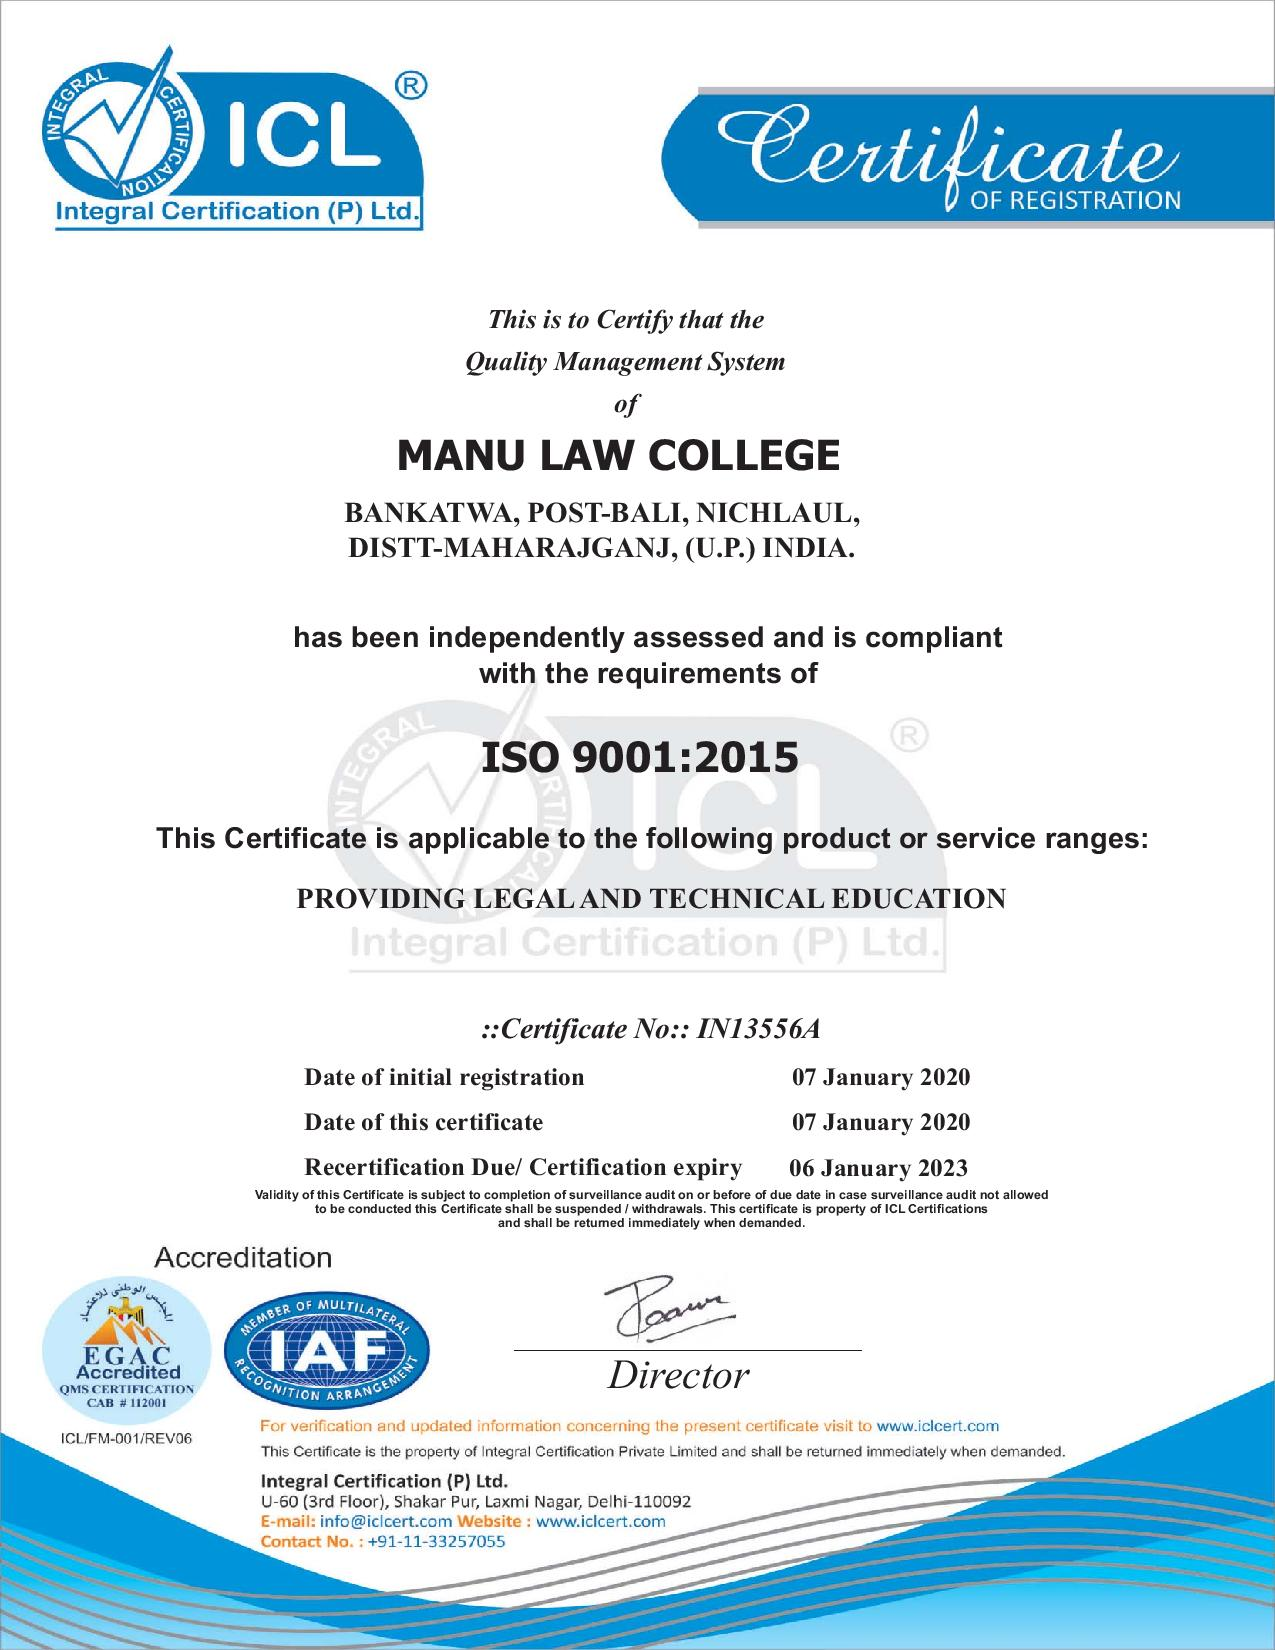 Manu Law College Nichlaul Maharajganj ISO Certification